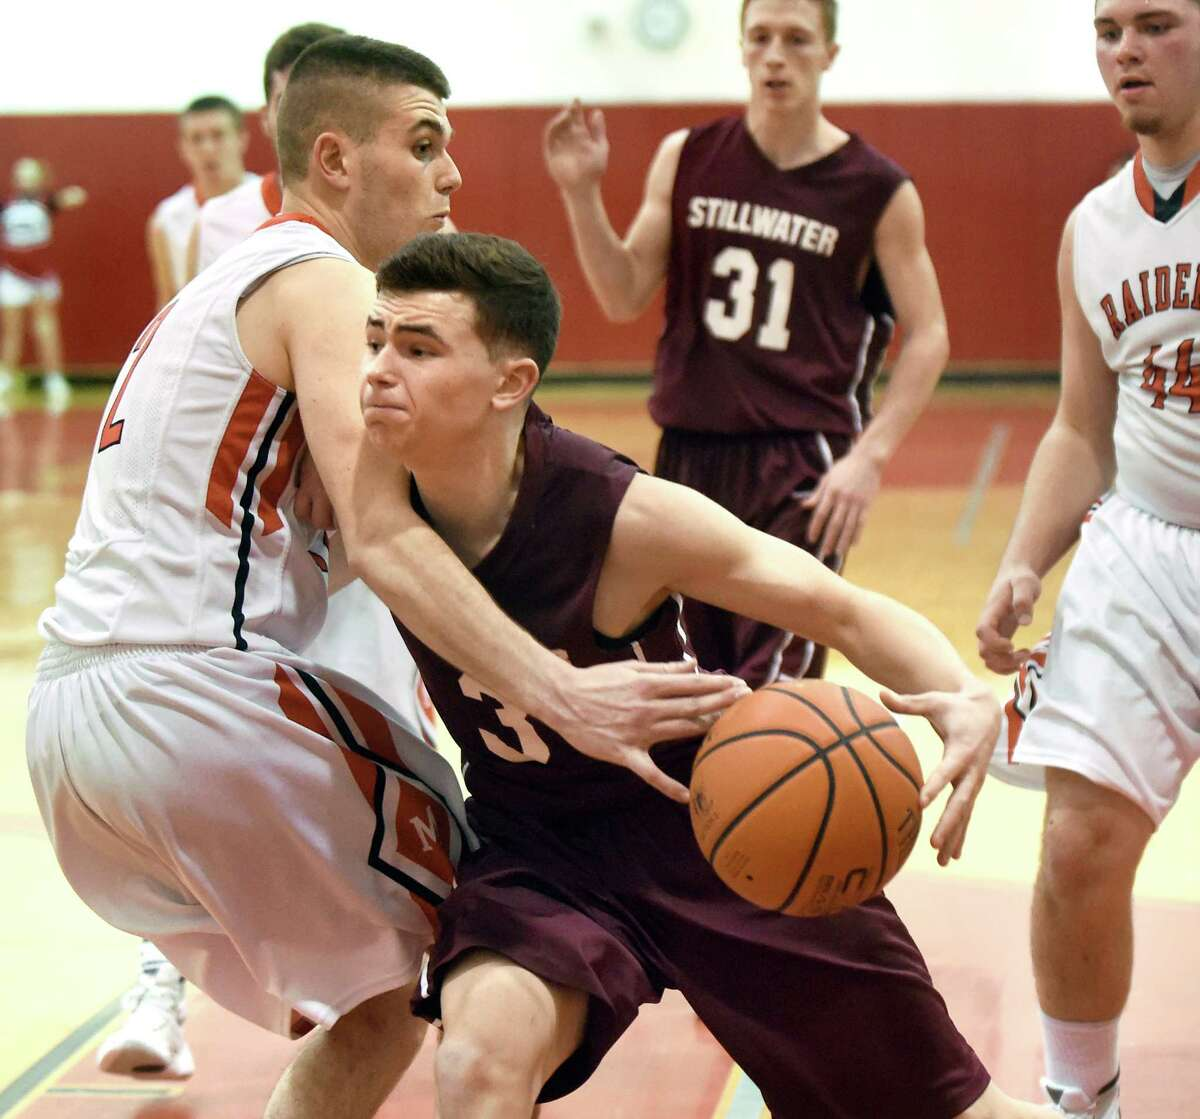 Stillwater's Jared D'Aloia, center, controls the ball as Mechanicville's Jonathan Pickett defends and fouls during their basketball game on Friday, Jan. 8, 2016, at Mechanicville High in Mechanicville, N.Y. (Cindy Schultz / Times Union)